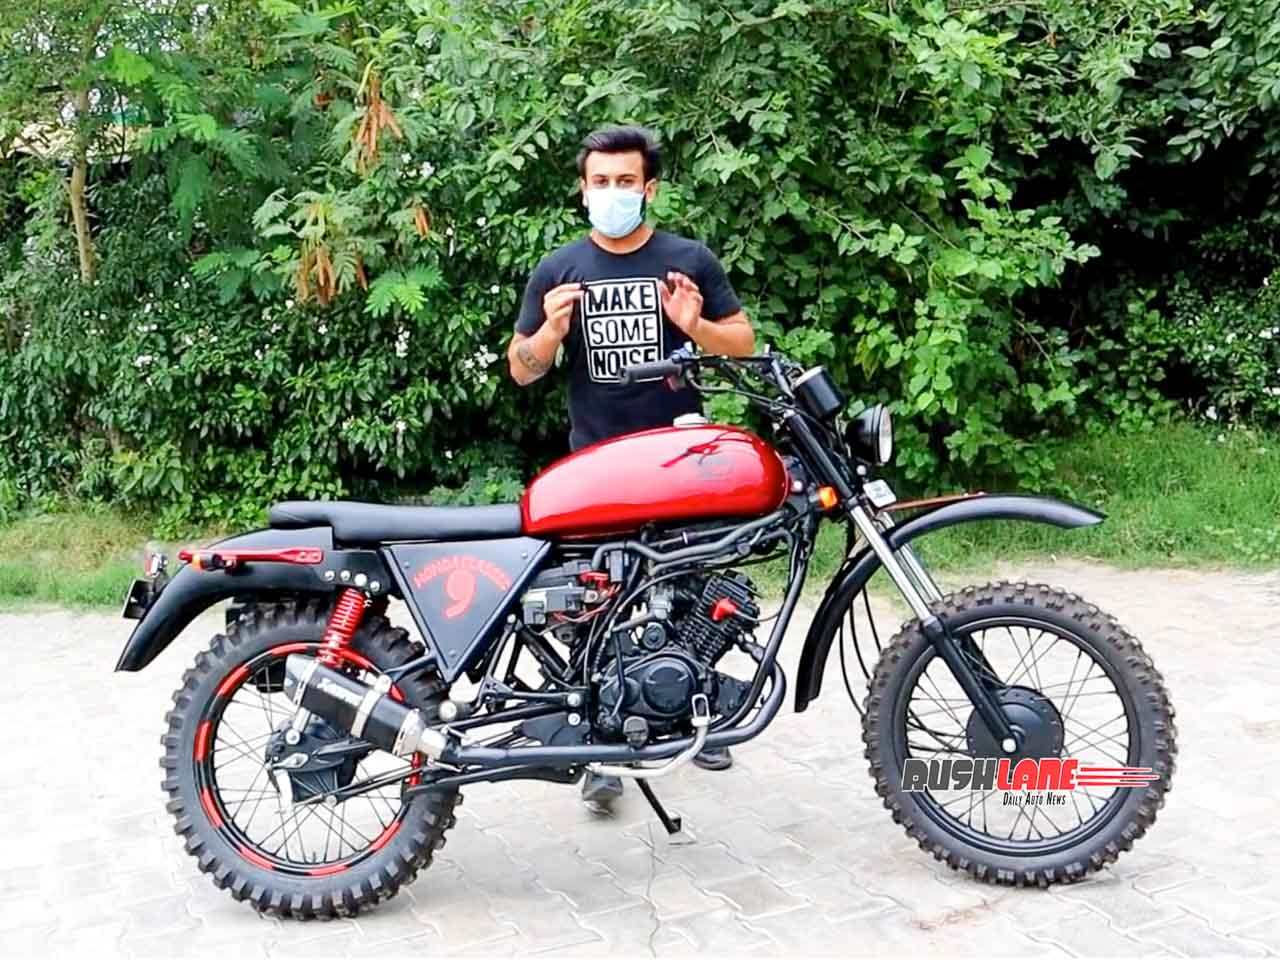 Hero Passion XPro modified into adventure bike for Rs 80k – Video